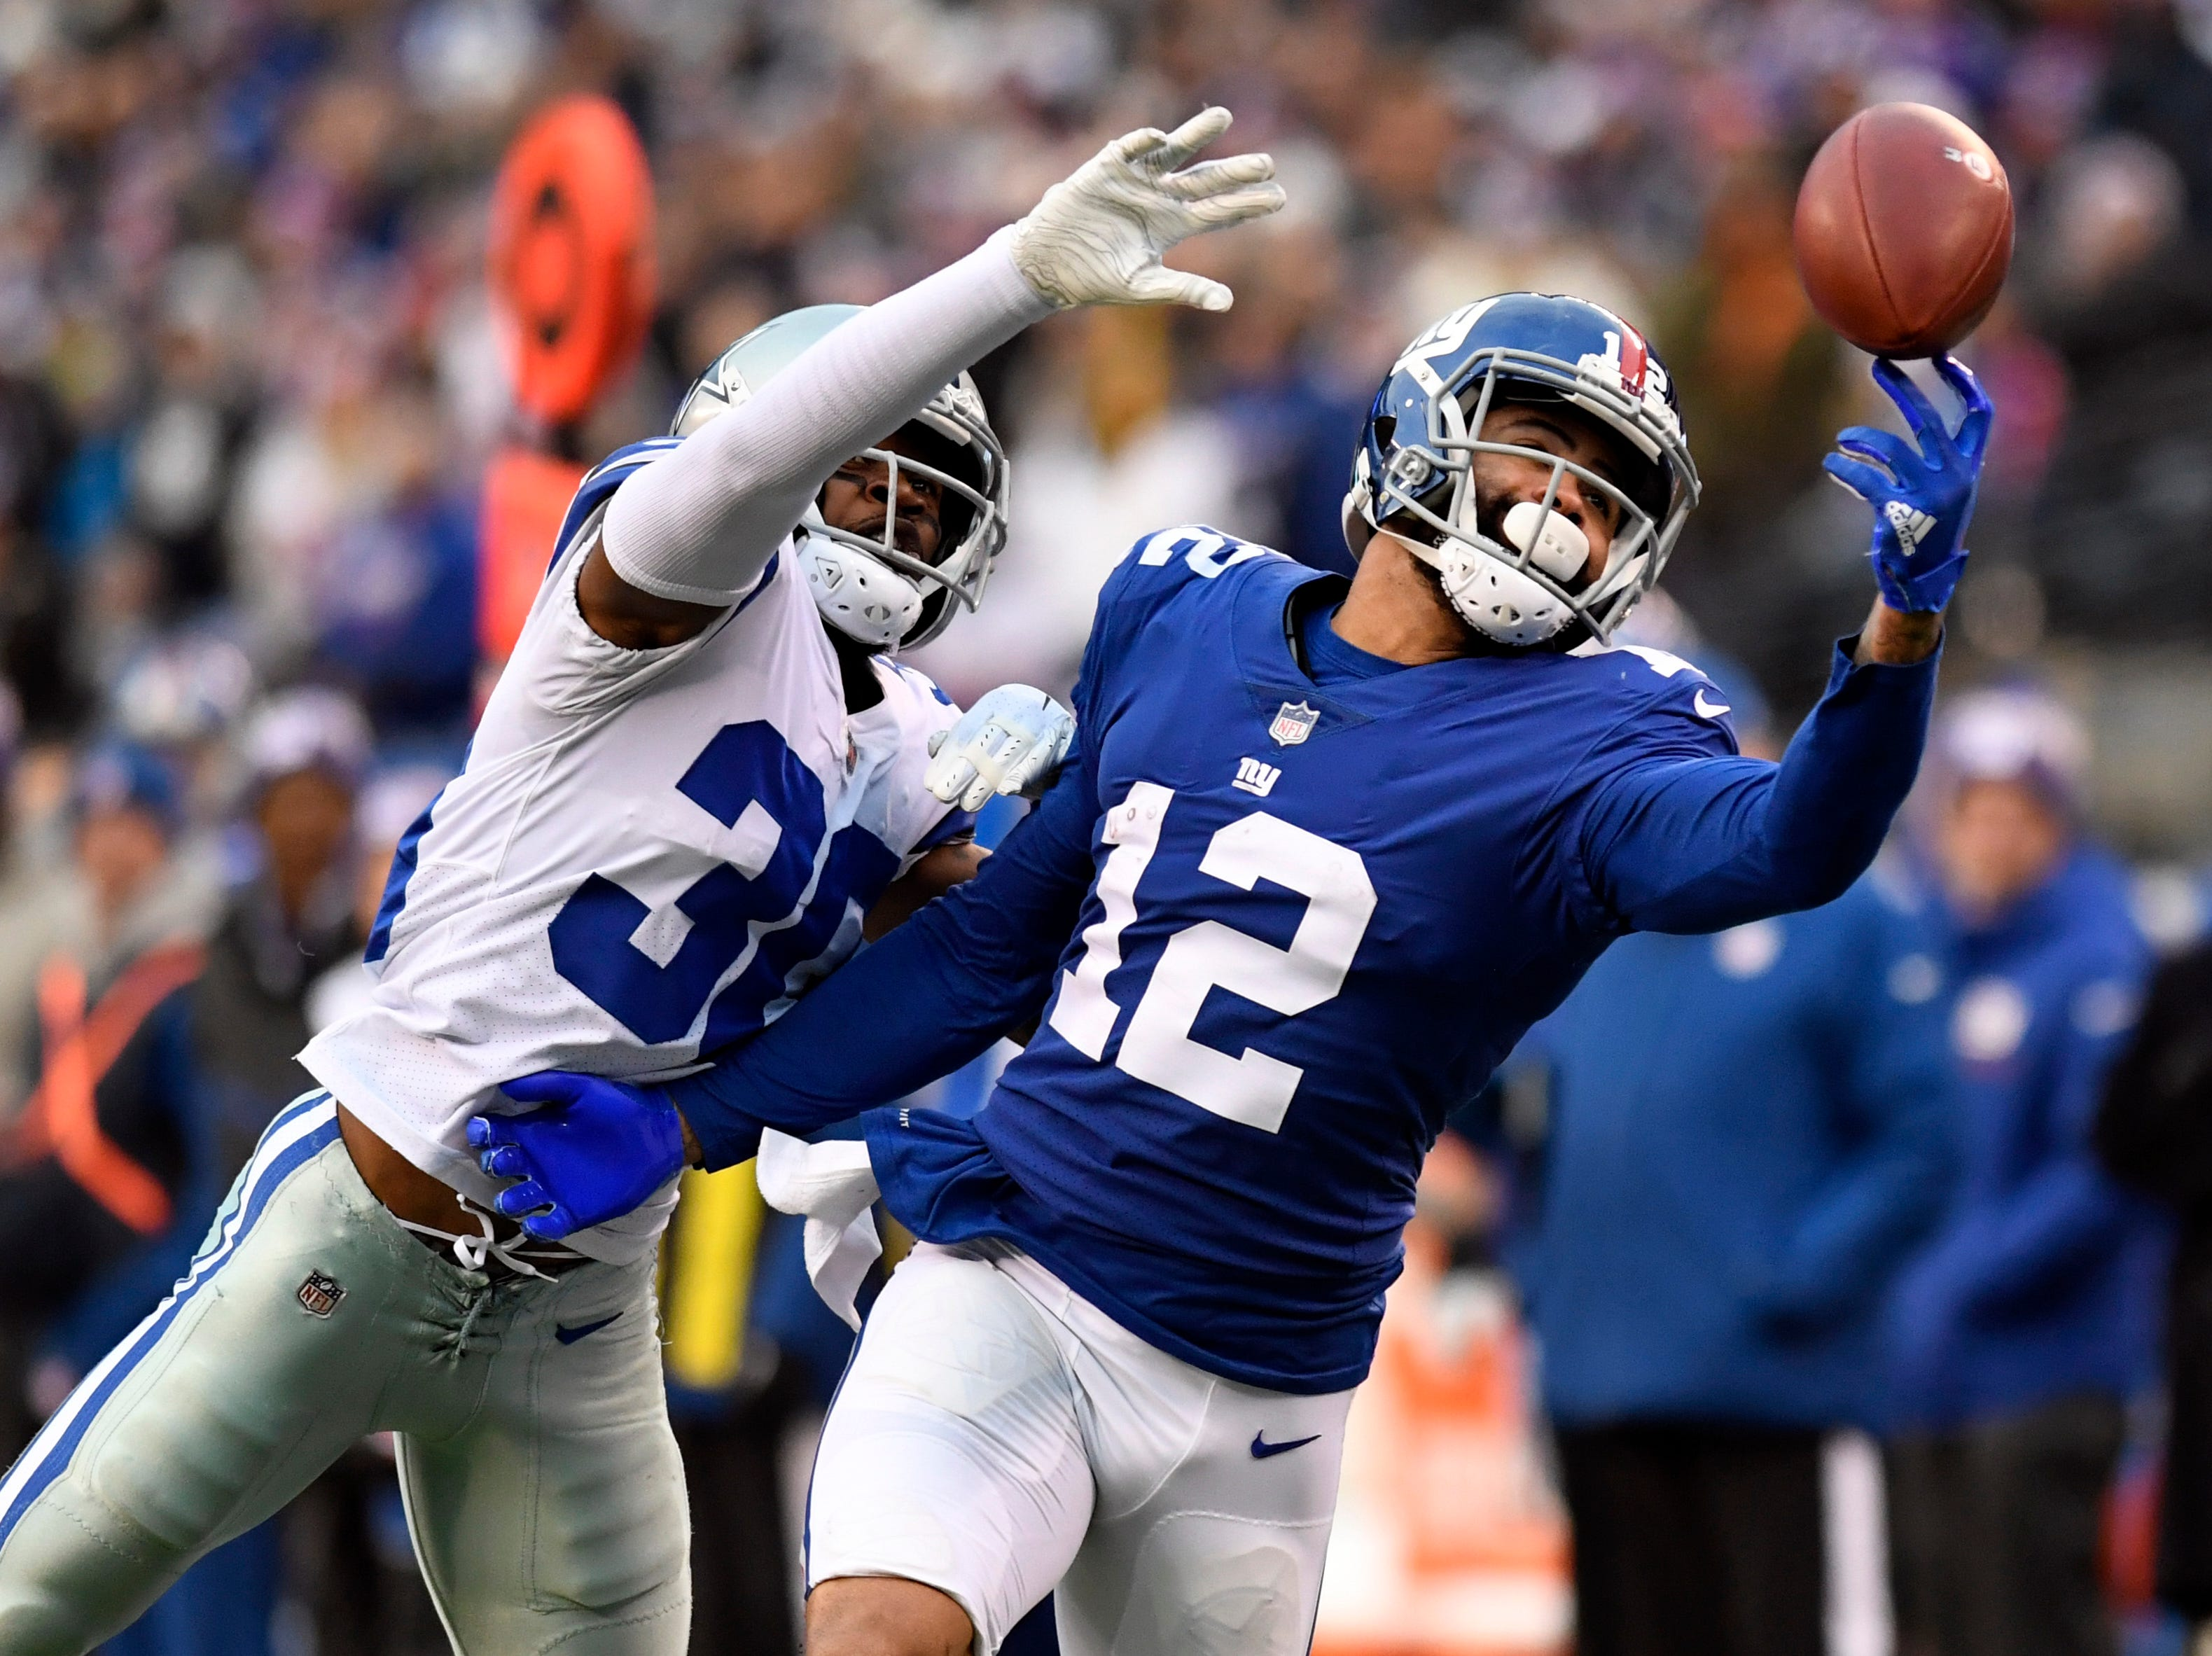 New York Giants wide receiver Cody Latimer (12) juggles the ball before catching it with pressure from Dallas Cowboys cornerback Anthony Brown (30) in the fourth quarter. The New York Giants lose to the Dallas Cowboys 36-35 on Sunday, Dec. 30, 2018, in East Rutherford.